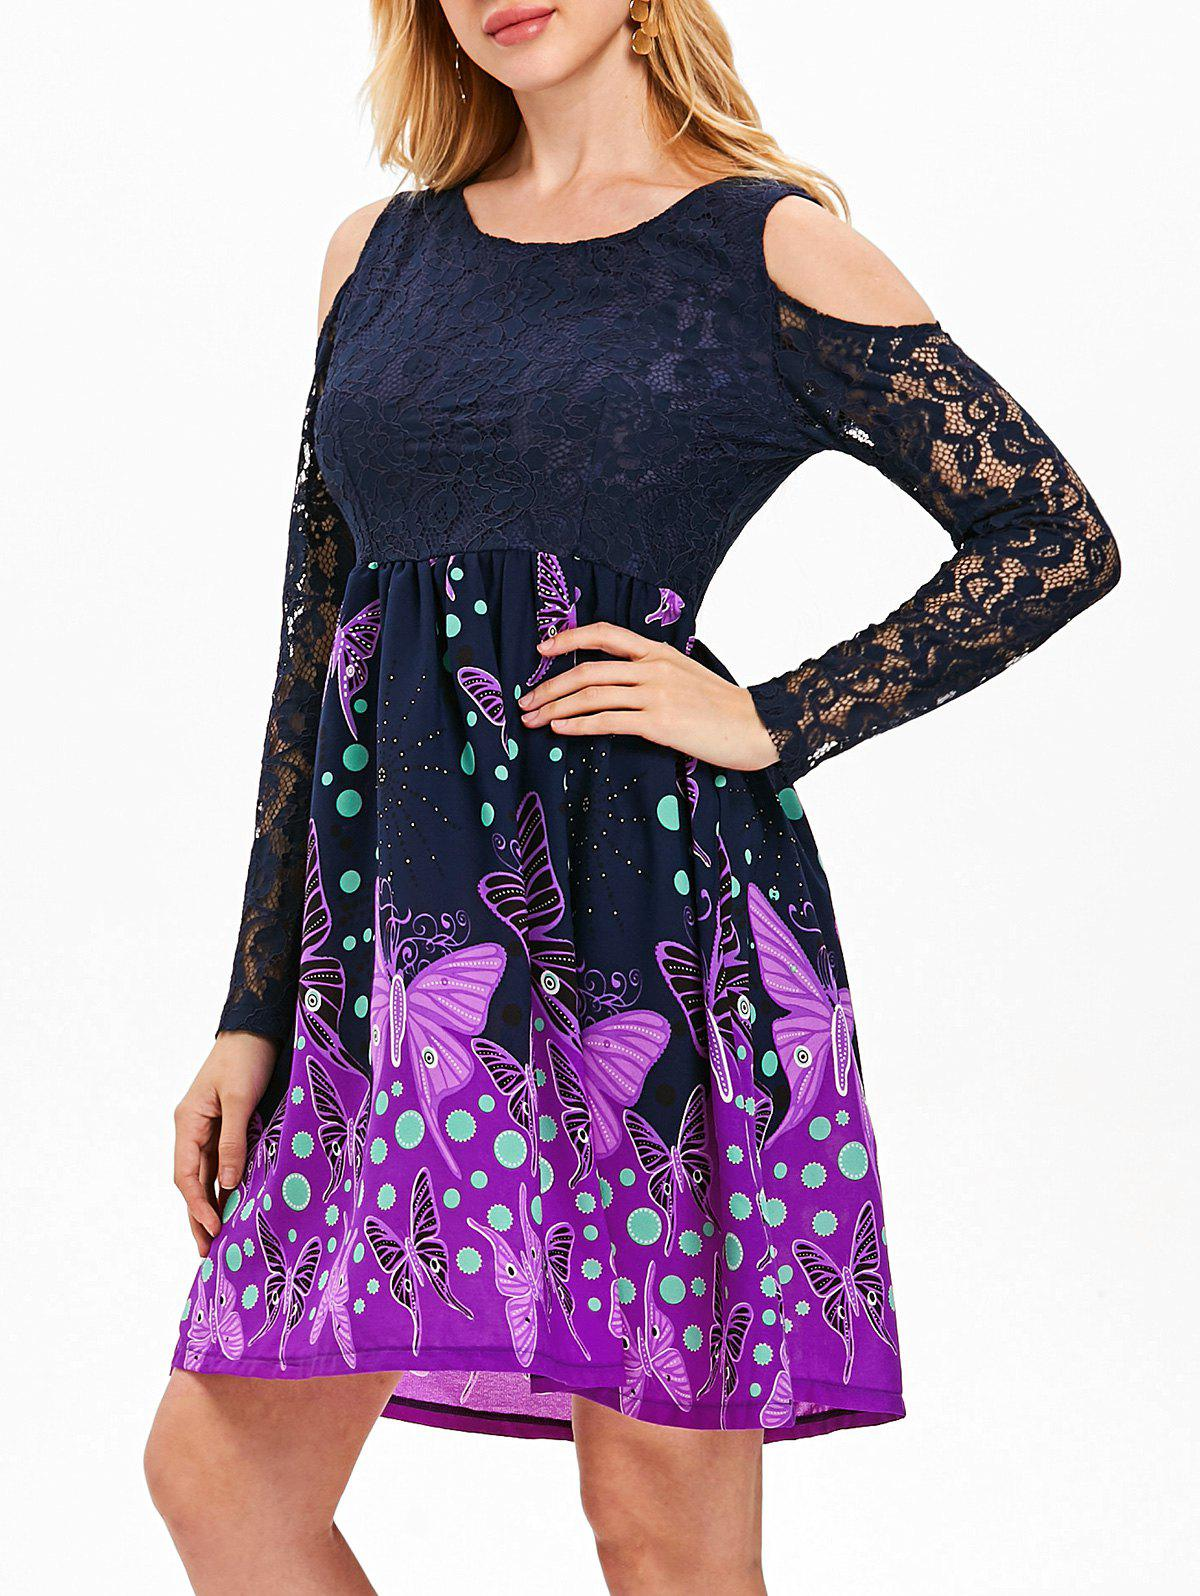 Lace Butterfly Print Knee Length Dress - MIDNIGHT BLUE L